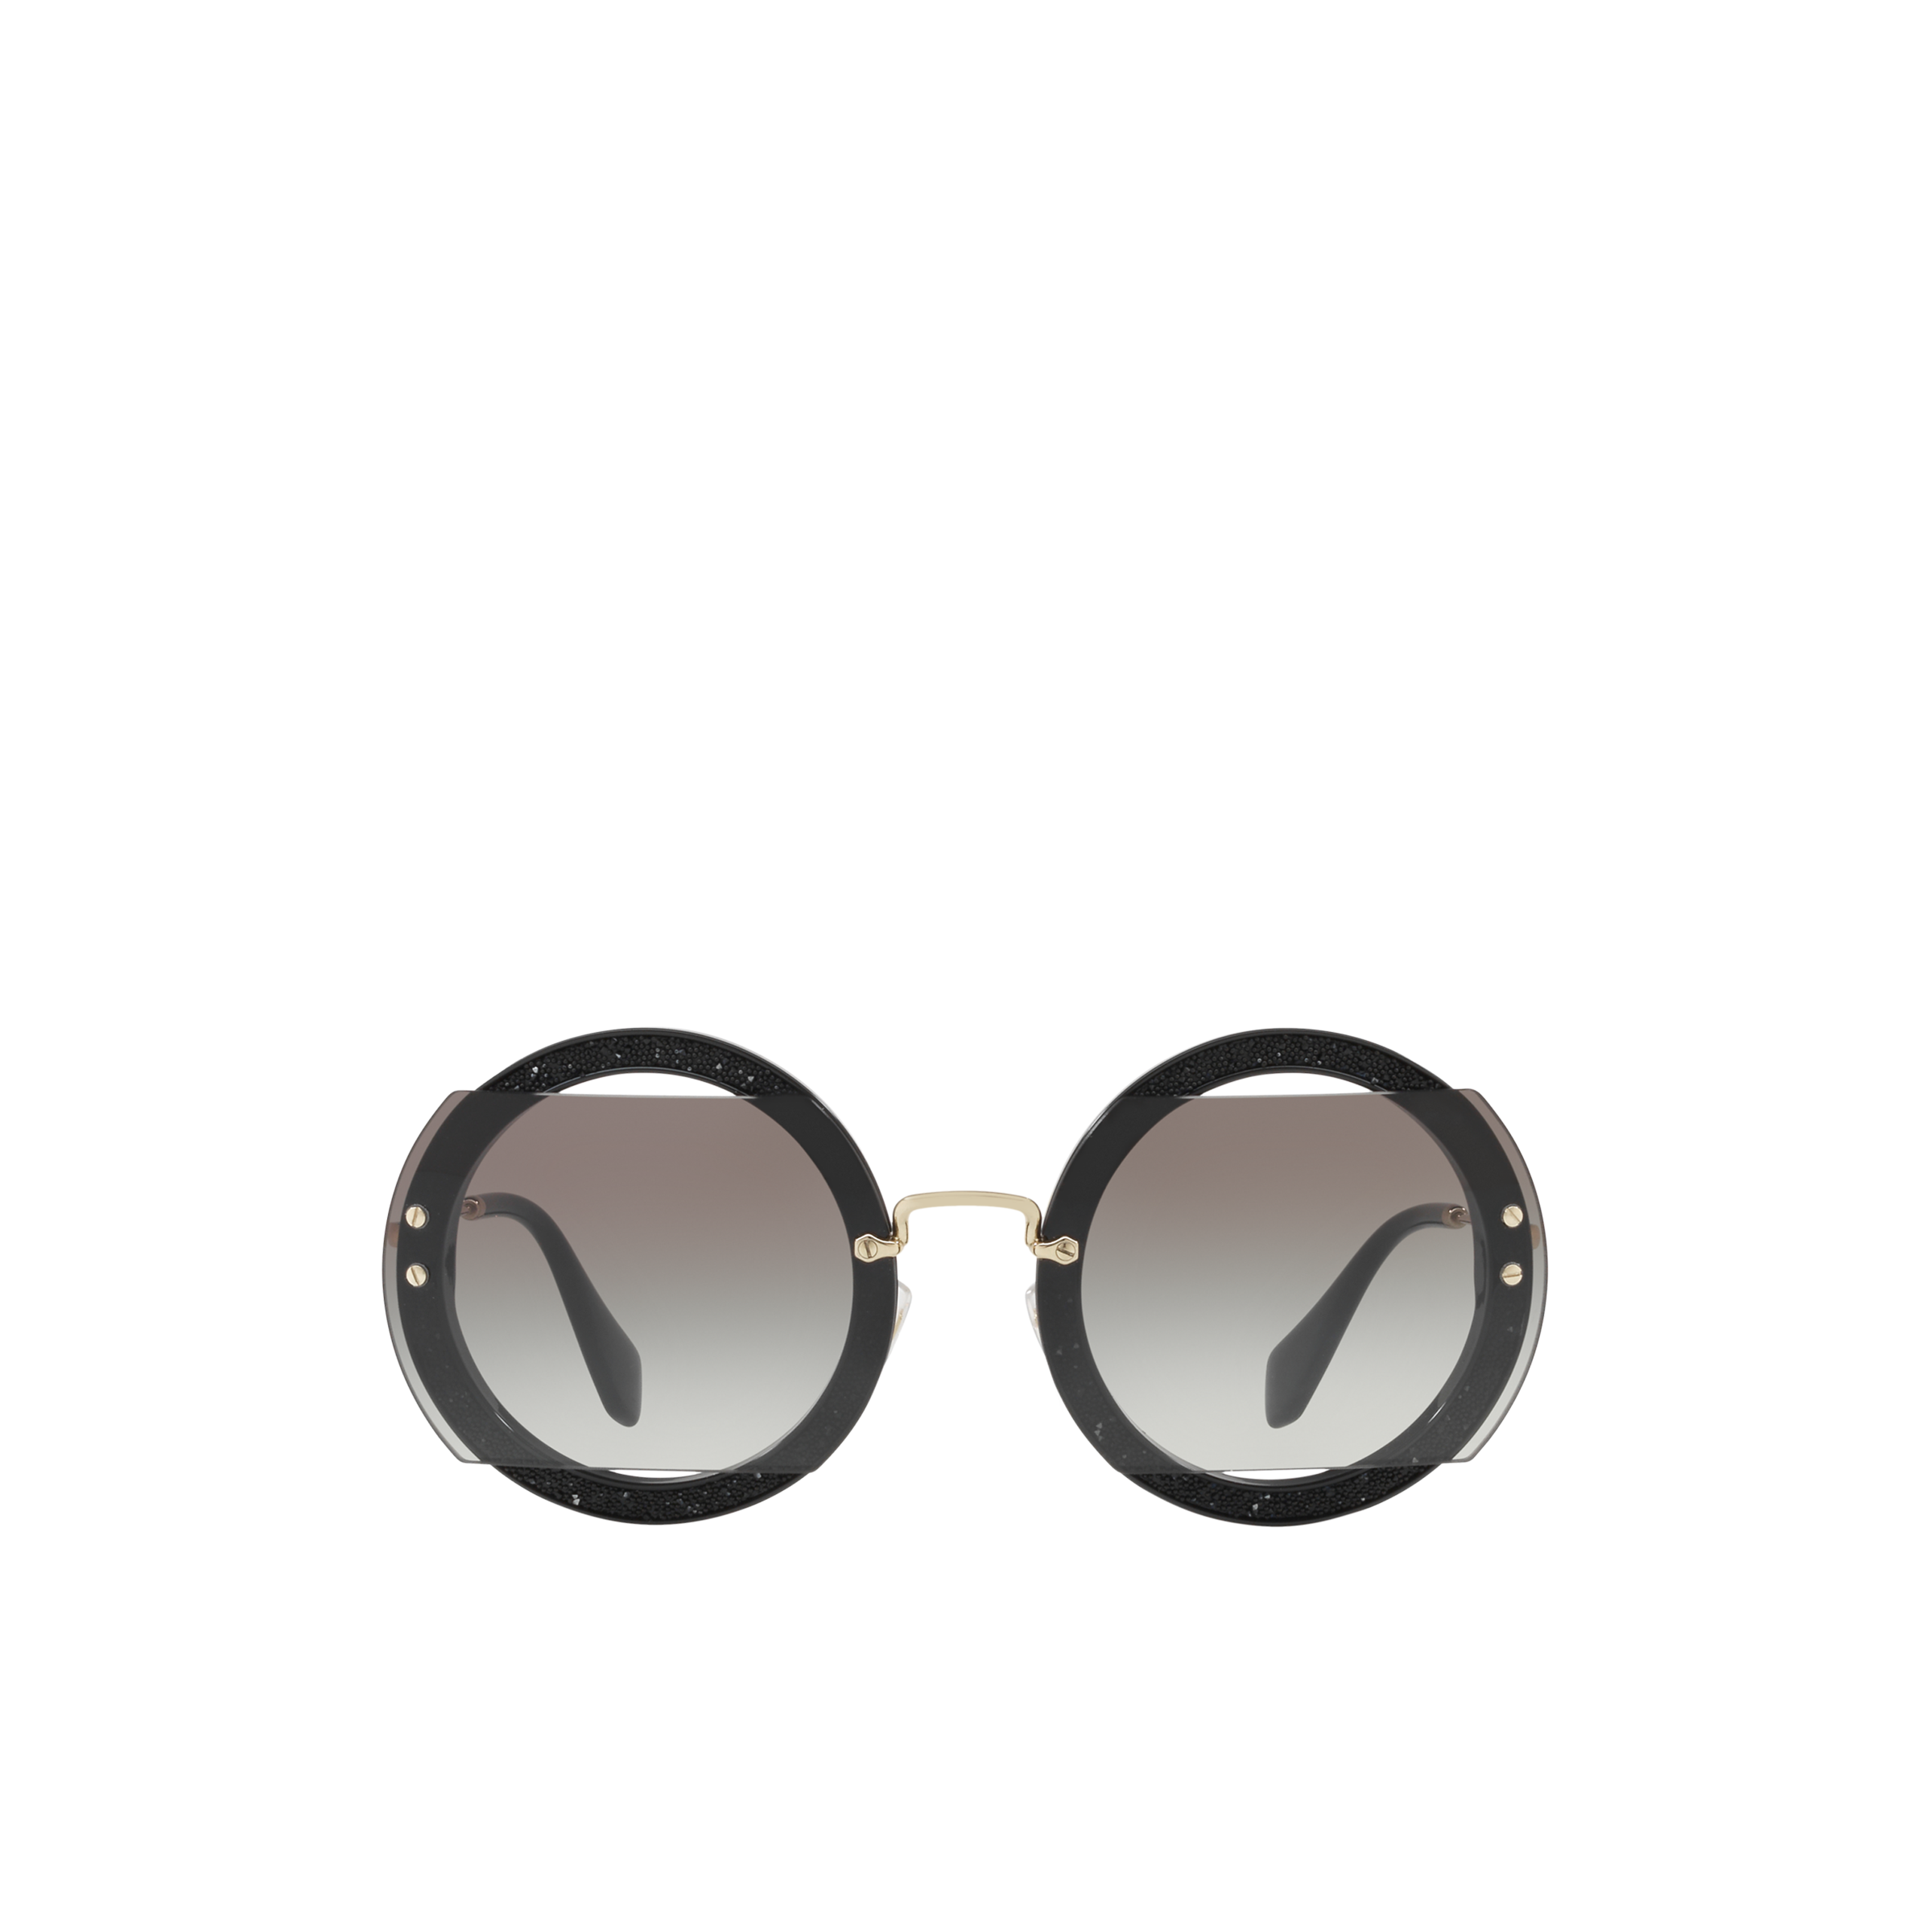 d5d992a9872 Find in store. Your item. Miu Miu Reveal glitter eyewear